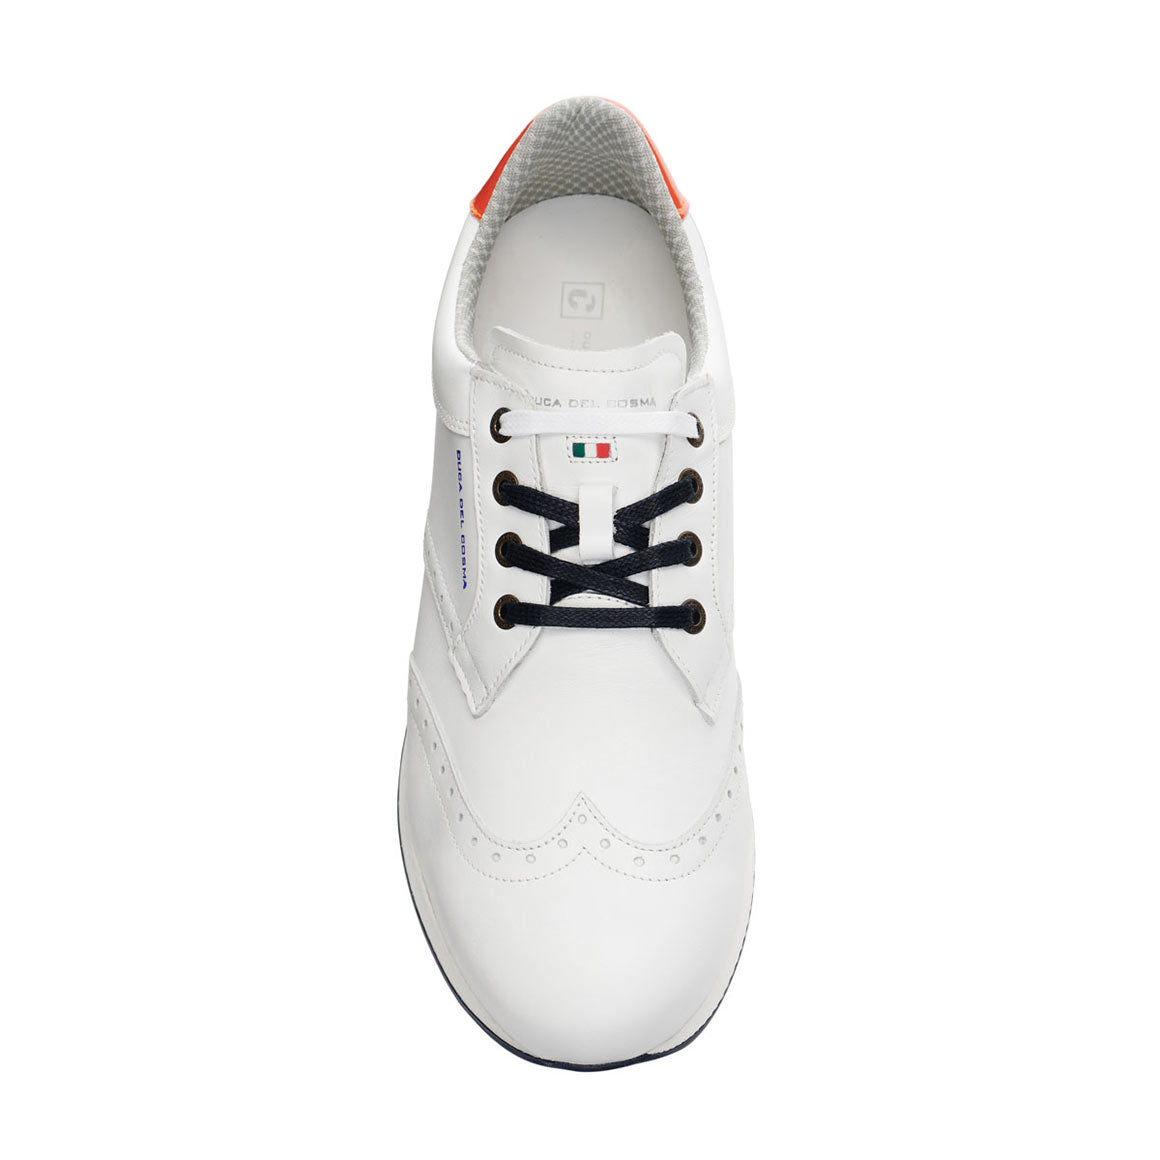 Men's La Spezia II White / Orange Golf Shoe